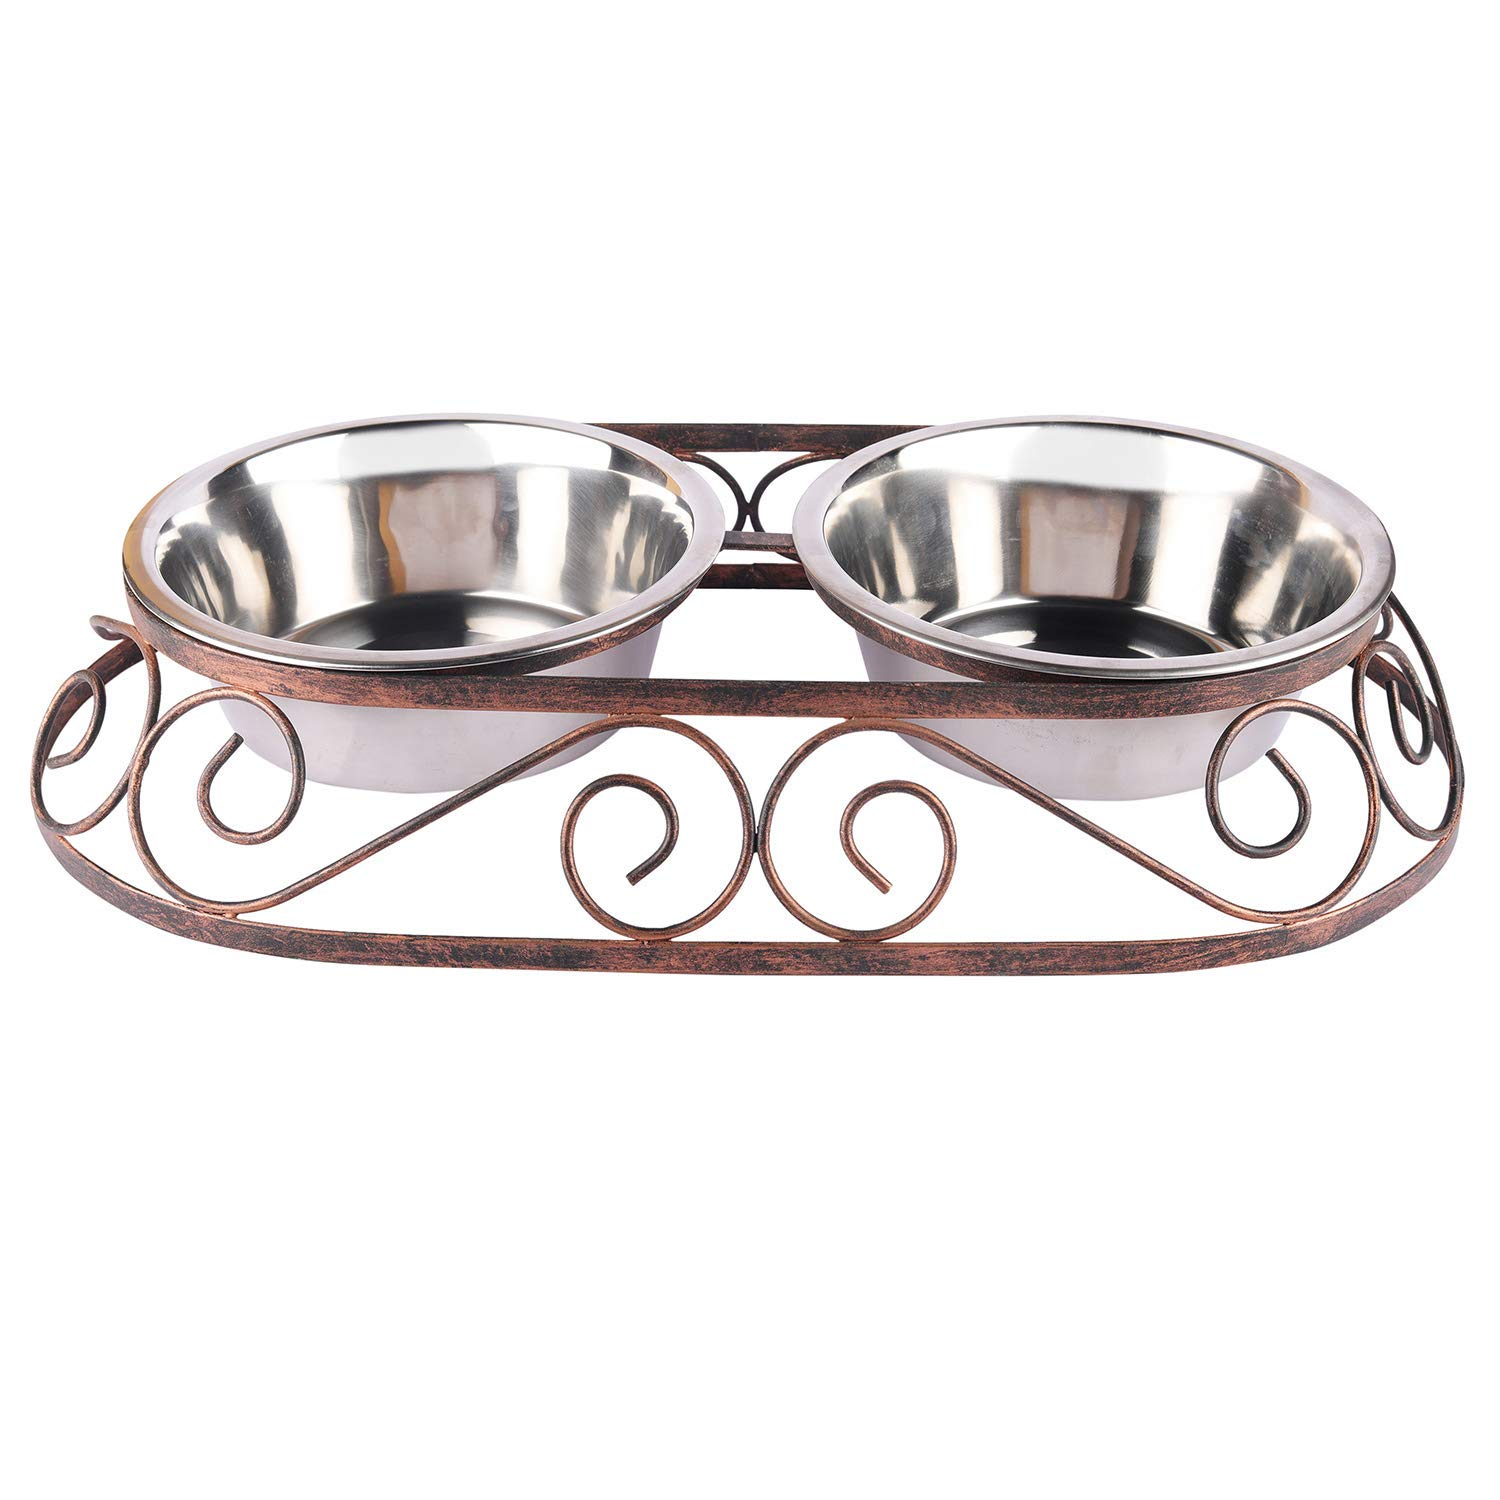 Pets Empire Dog Bowl Rustic Oval Shape Diner For Dogs And Cats Stainless Steel Food And Water Bowls With Iron Stand.Pack Of 1 (Medium (450 ML X 2 Bowl ))